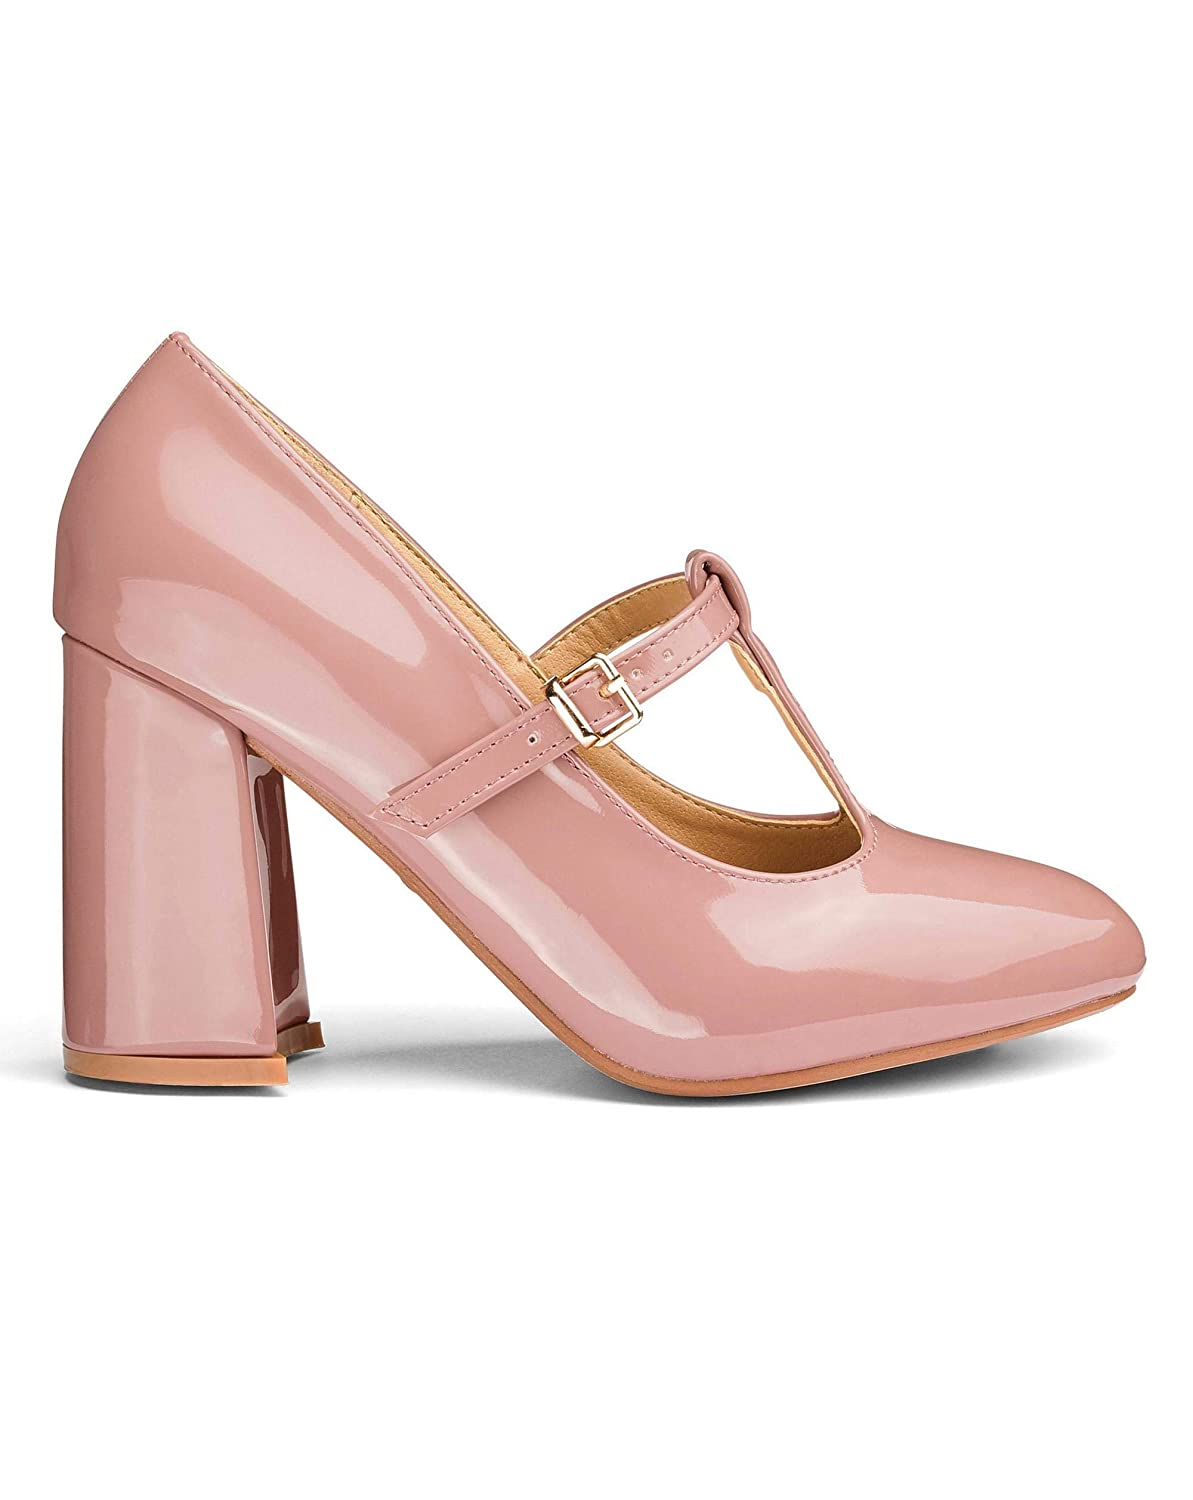 60% clearance Sales promotion huge inventory JD Williams Sole Diva Slanted Heel Courts Eee Fit